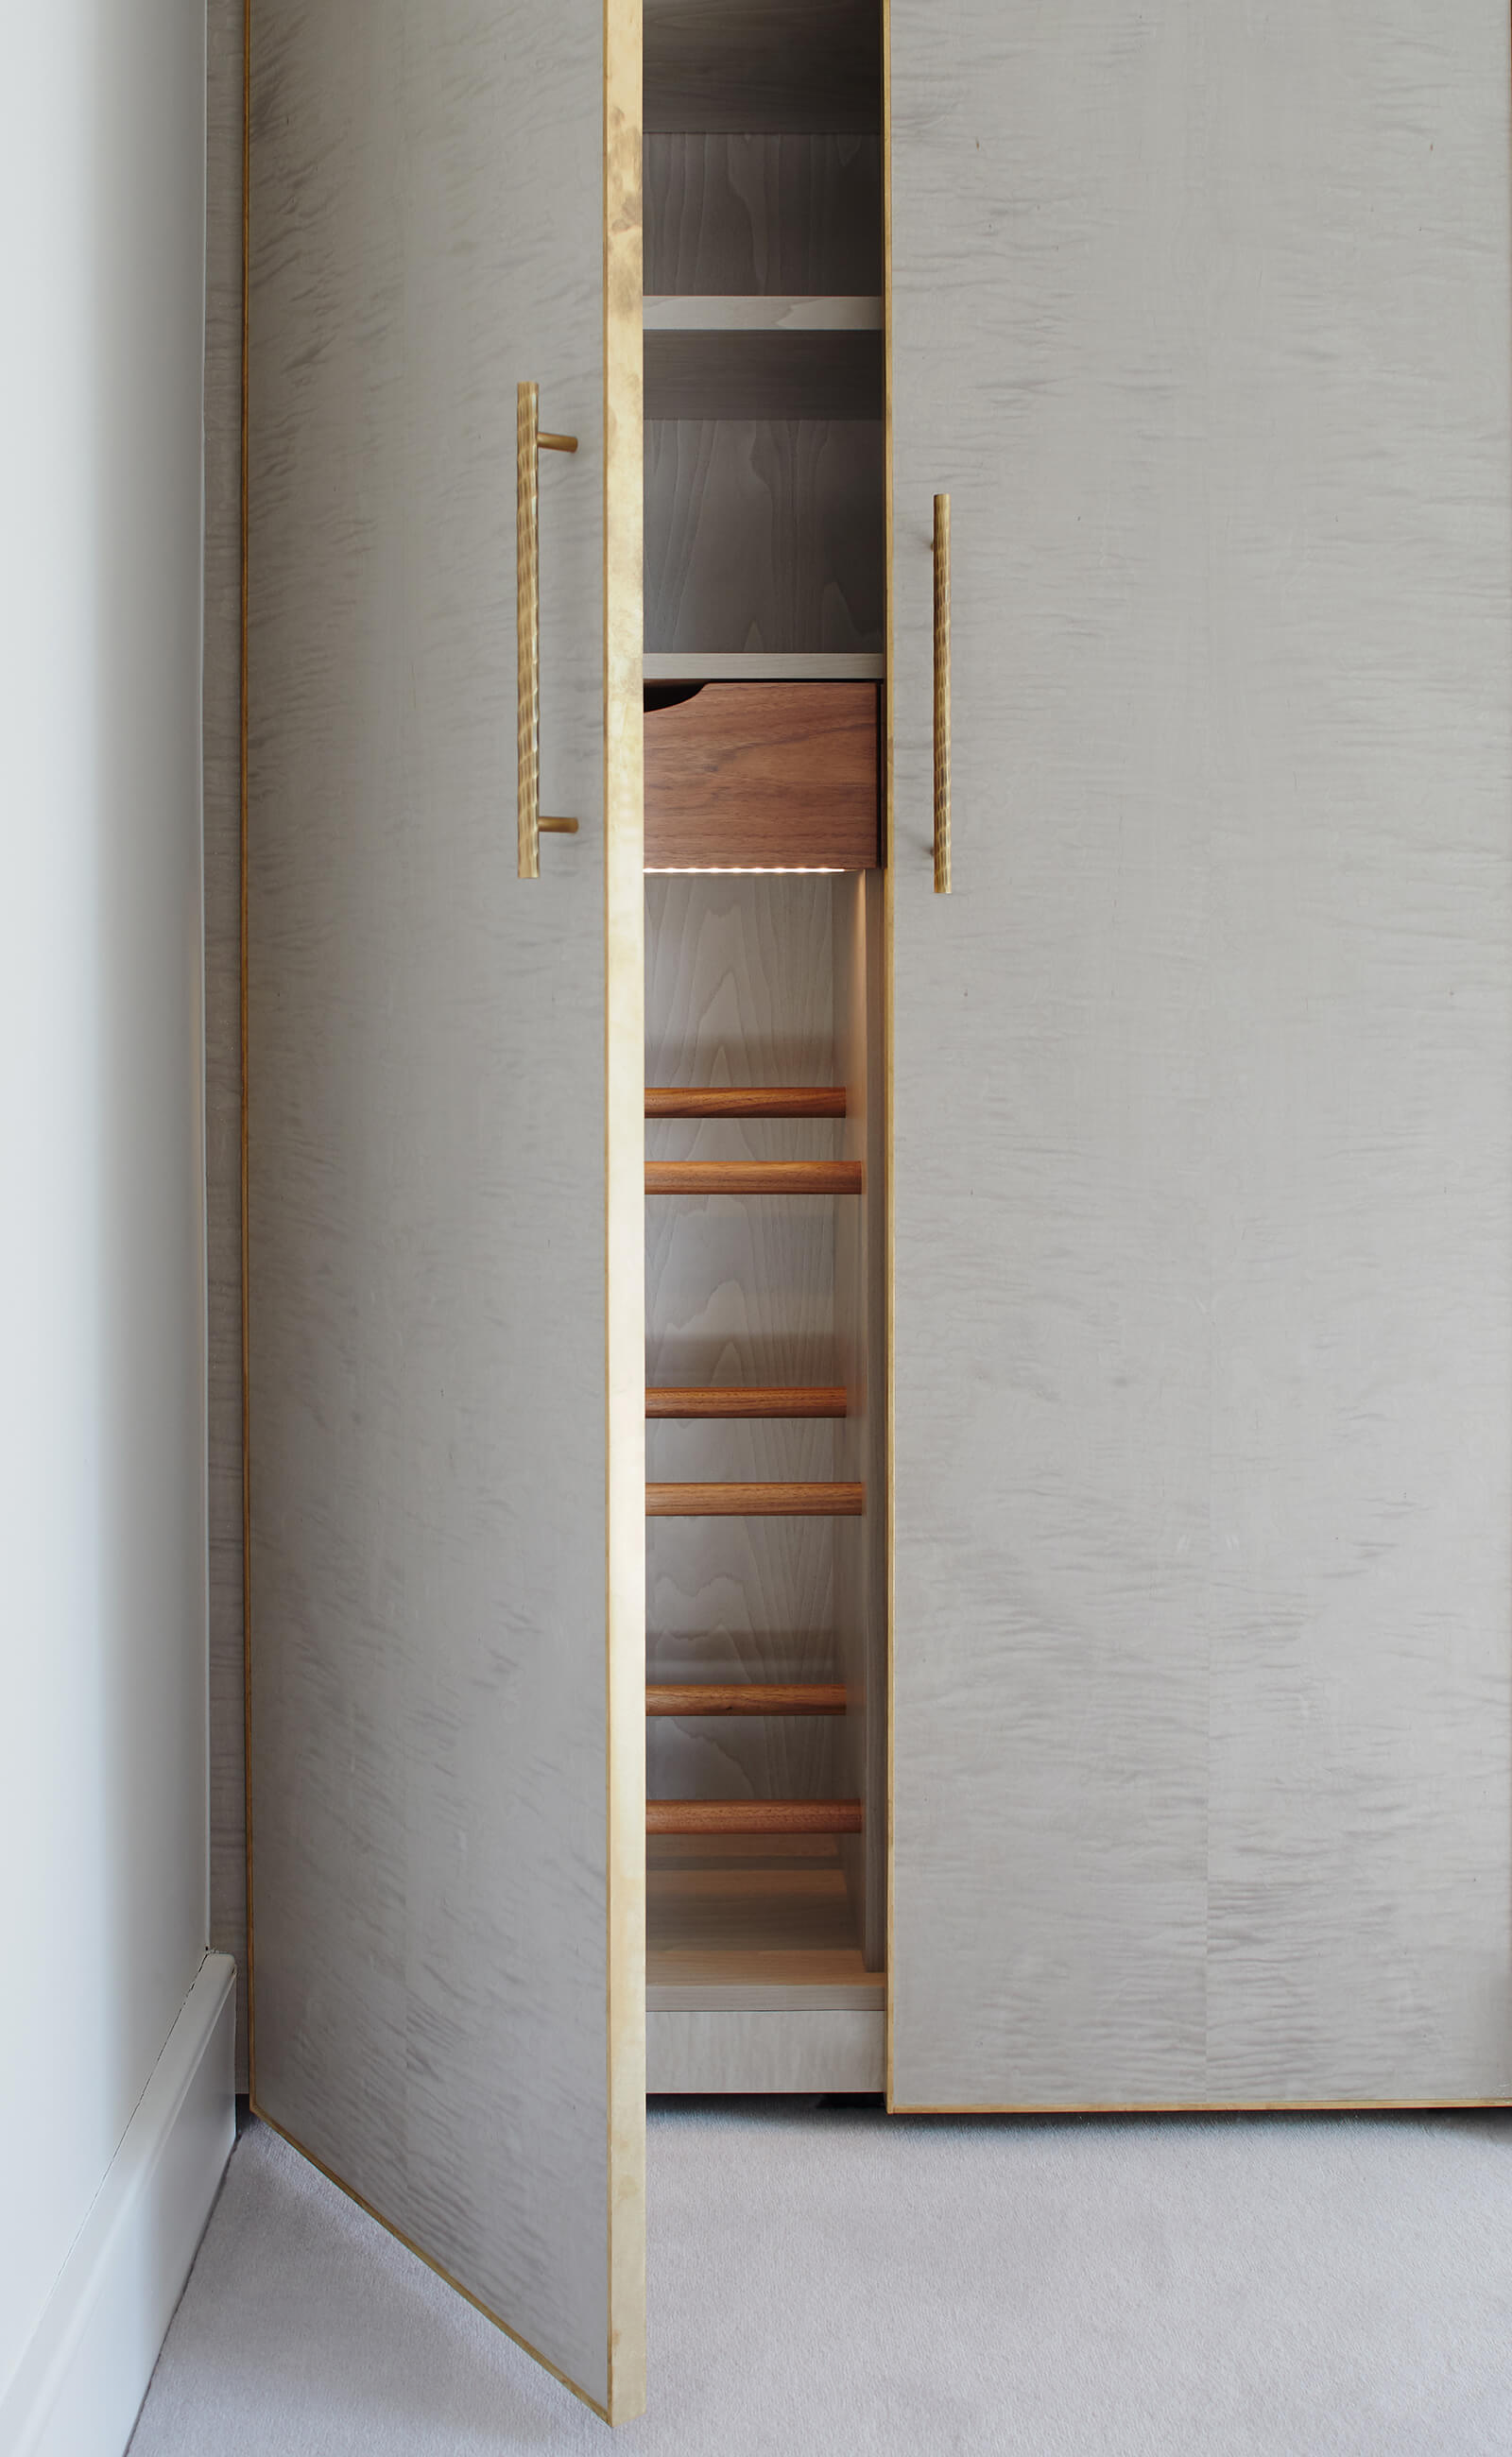 Wardrobe doors with delicate brass edging and custom built shelving in walnut.